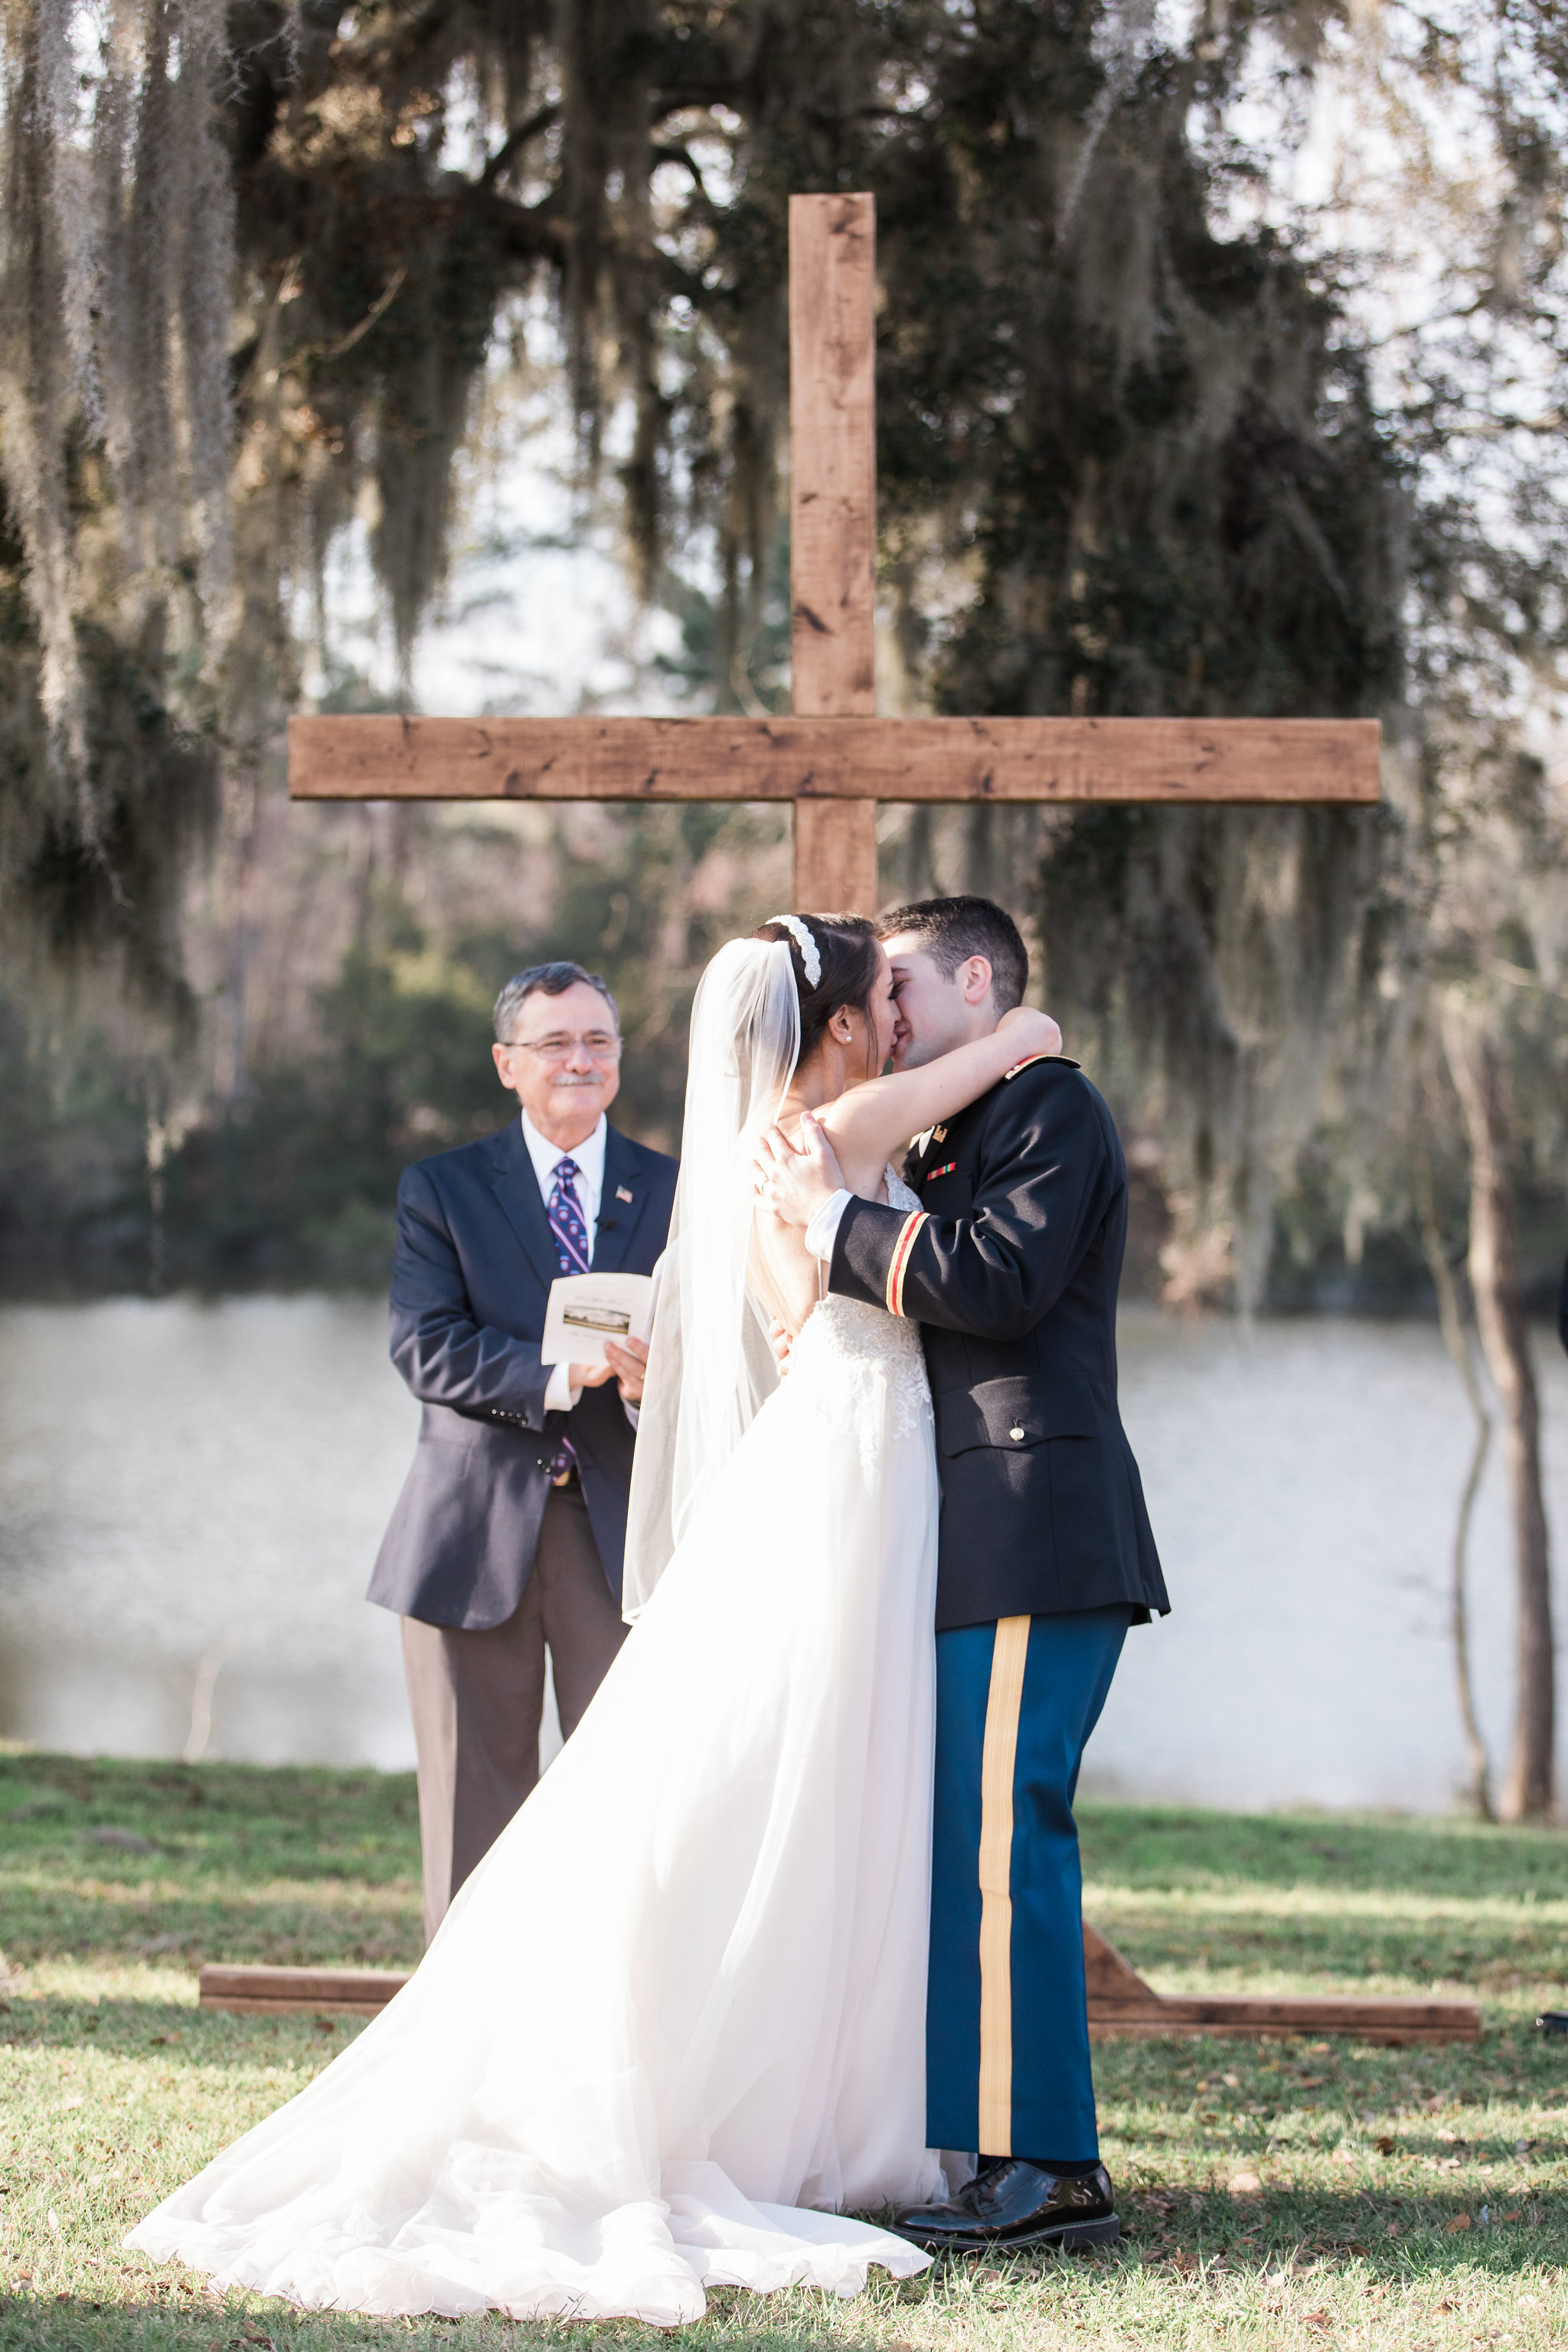 Andrea-brad-apt-b-photography-savannah-wedding-savannah-wedding-photographer-red-gate-barn-wedding-historic-savannah-barn-rustic-wedding-first-kiss-22.JPG